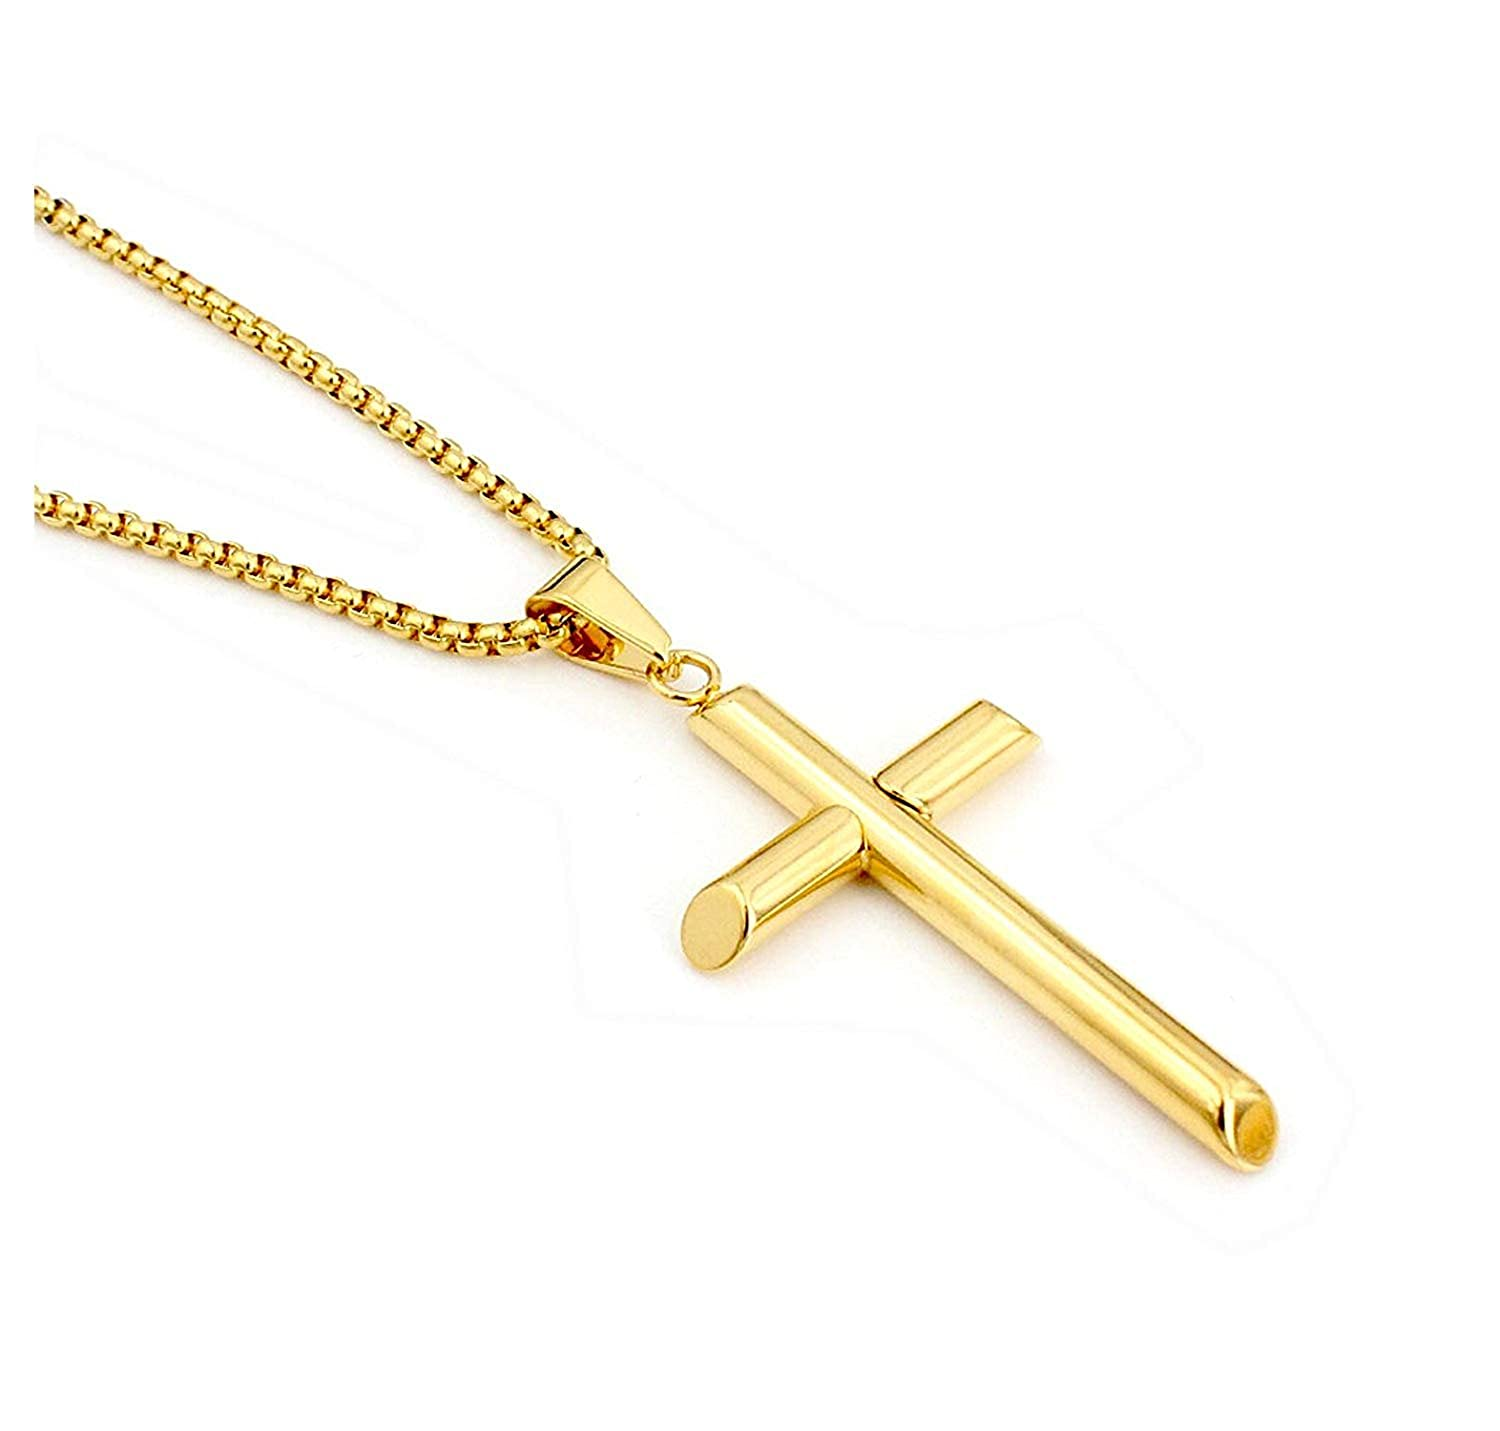 bd6d9b97907b Hollywood Jewelry 24K Gold Chain Cross Pendant Necklace for Men ...